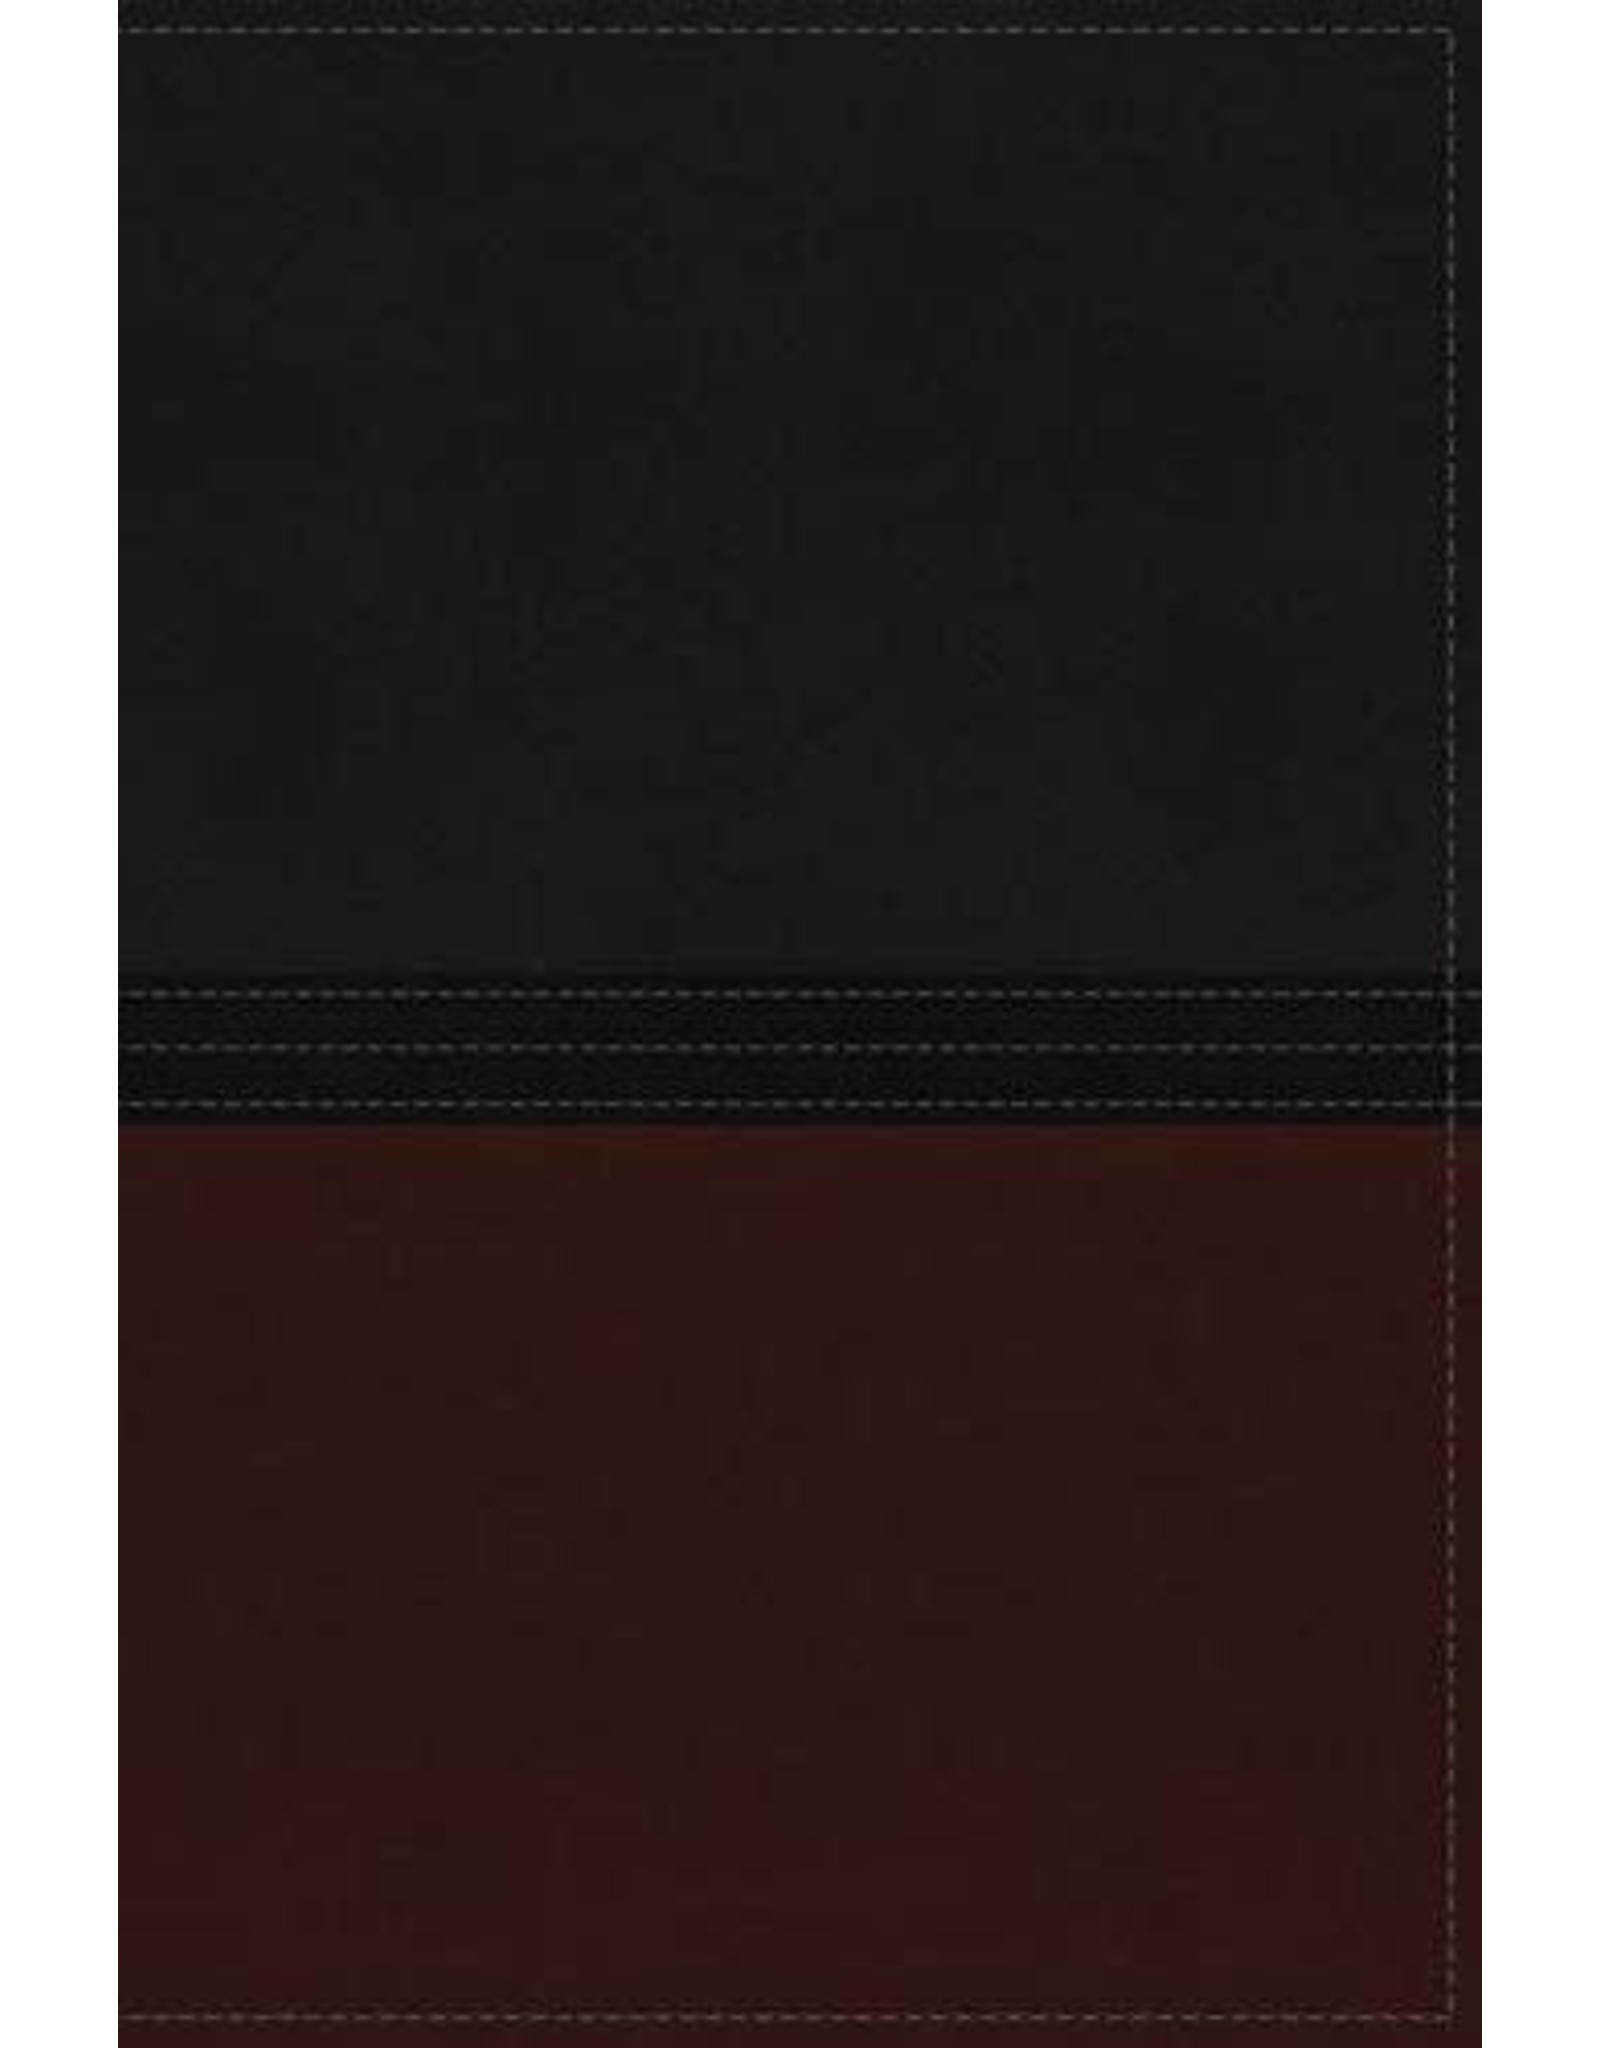 MacArthur Study Bible NIV Auburn/Black , Leathersoft